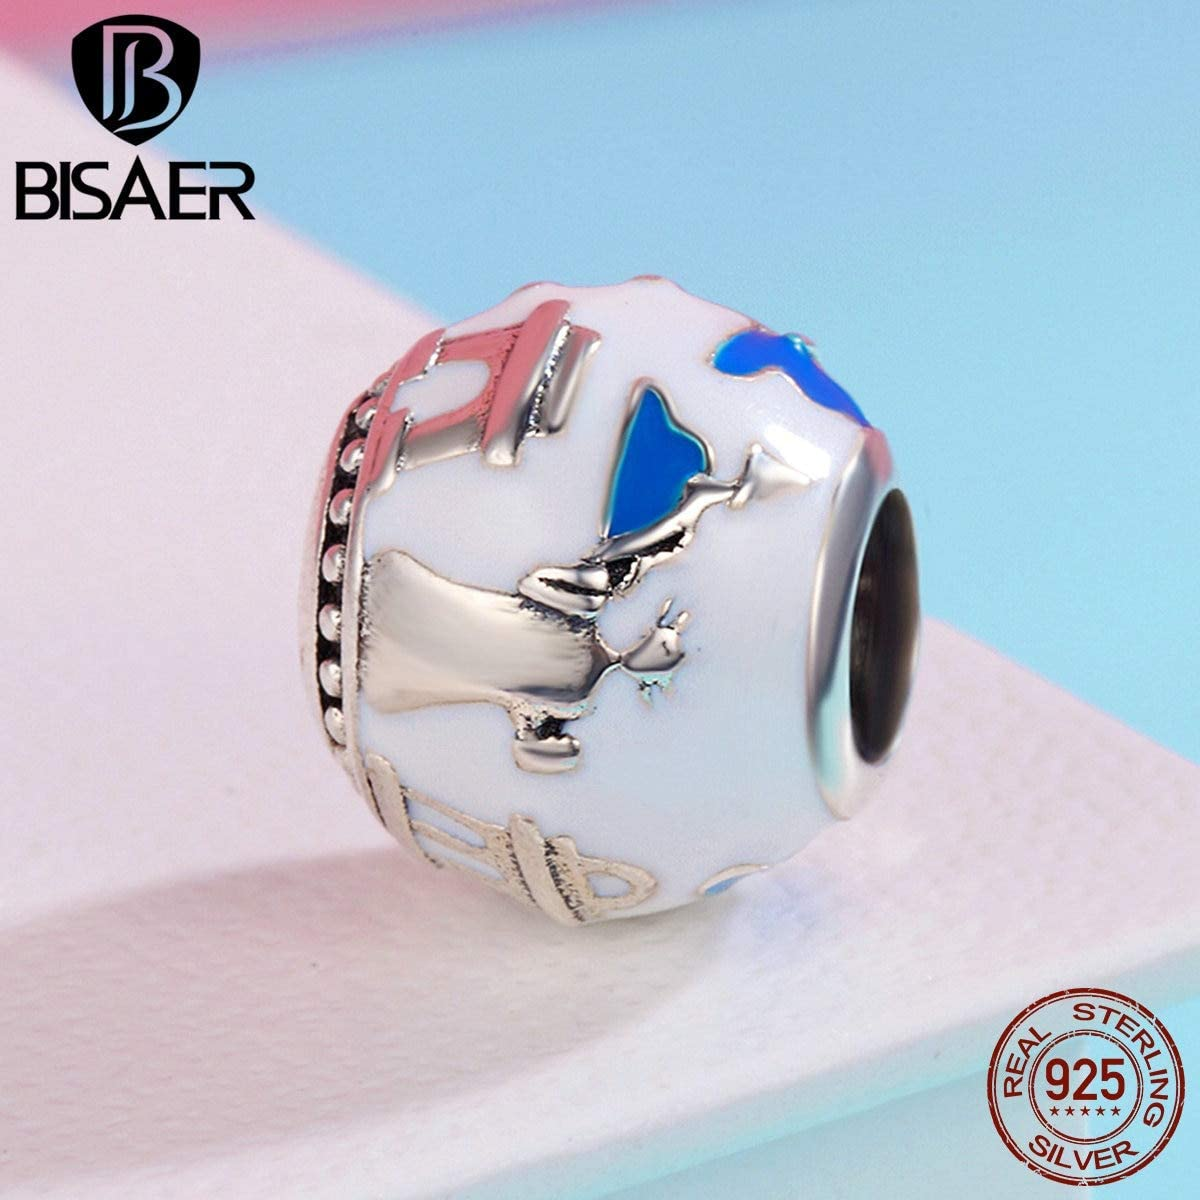 Calvas Authentic 100/% 925 Sterling Silver Fantasy World Travelling Enamel Charms Fit Bracelets Charms Silver 925 Original Jewelry